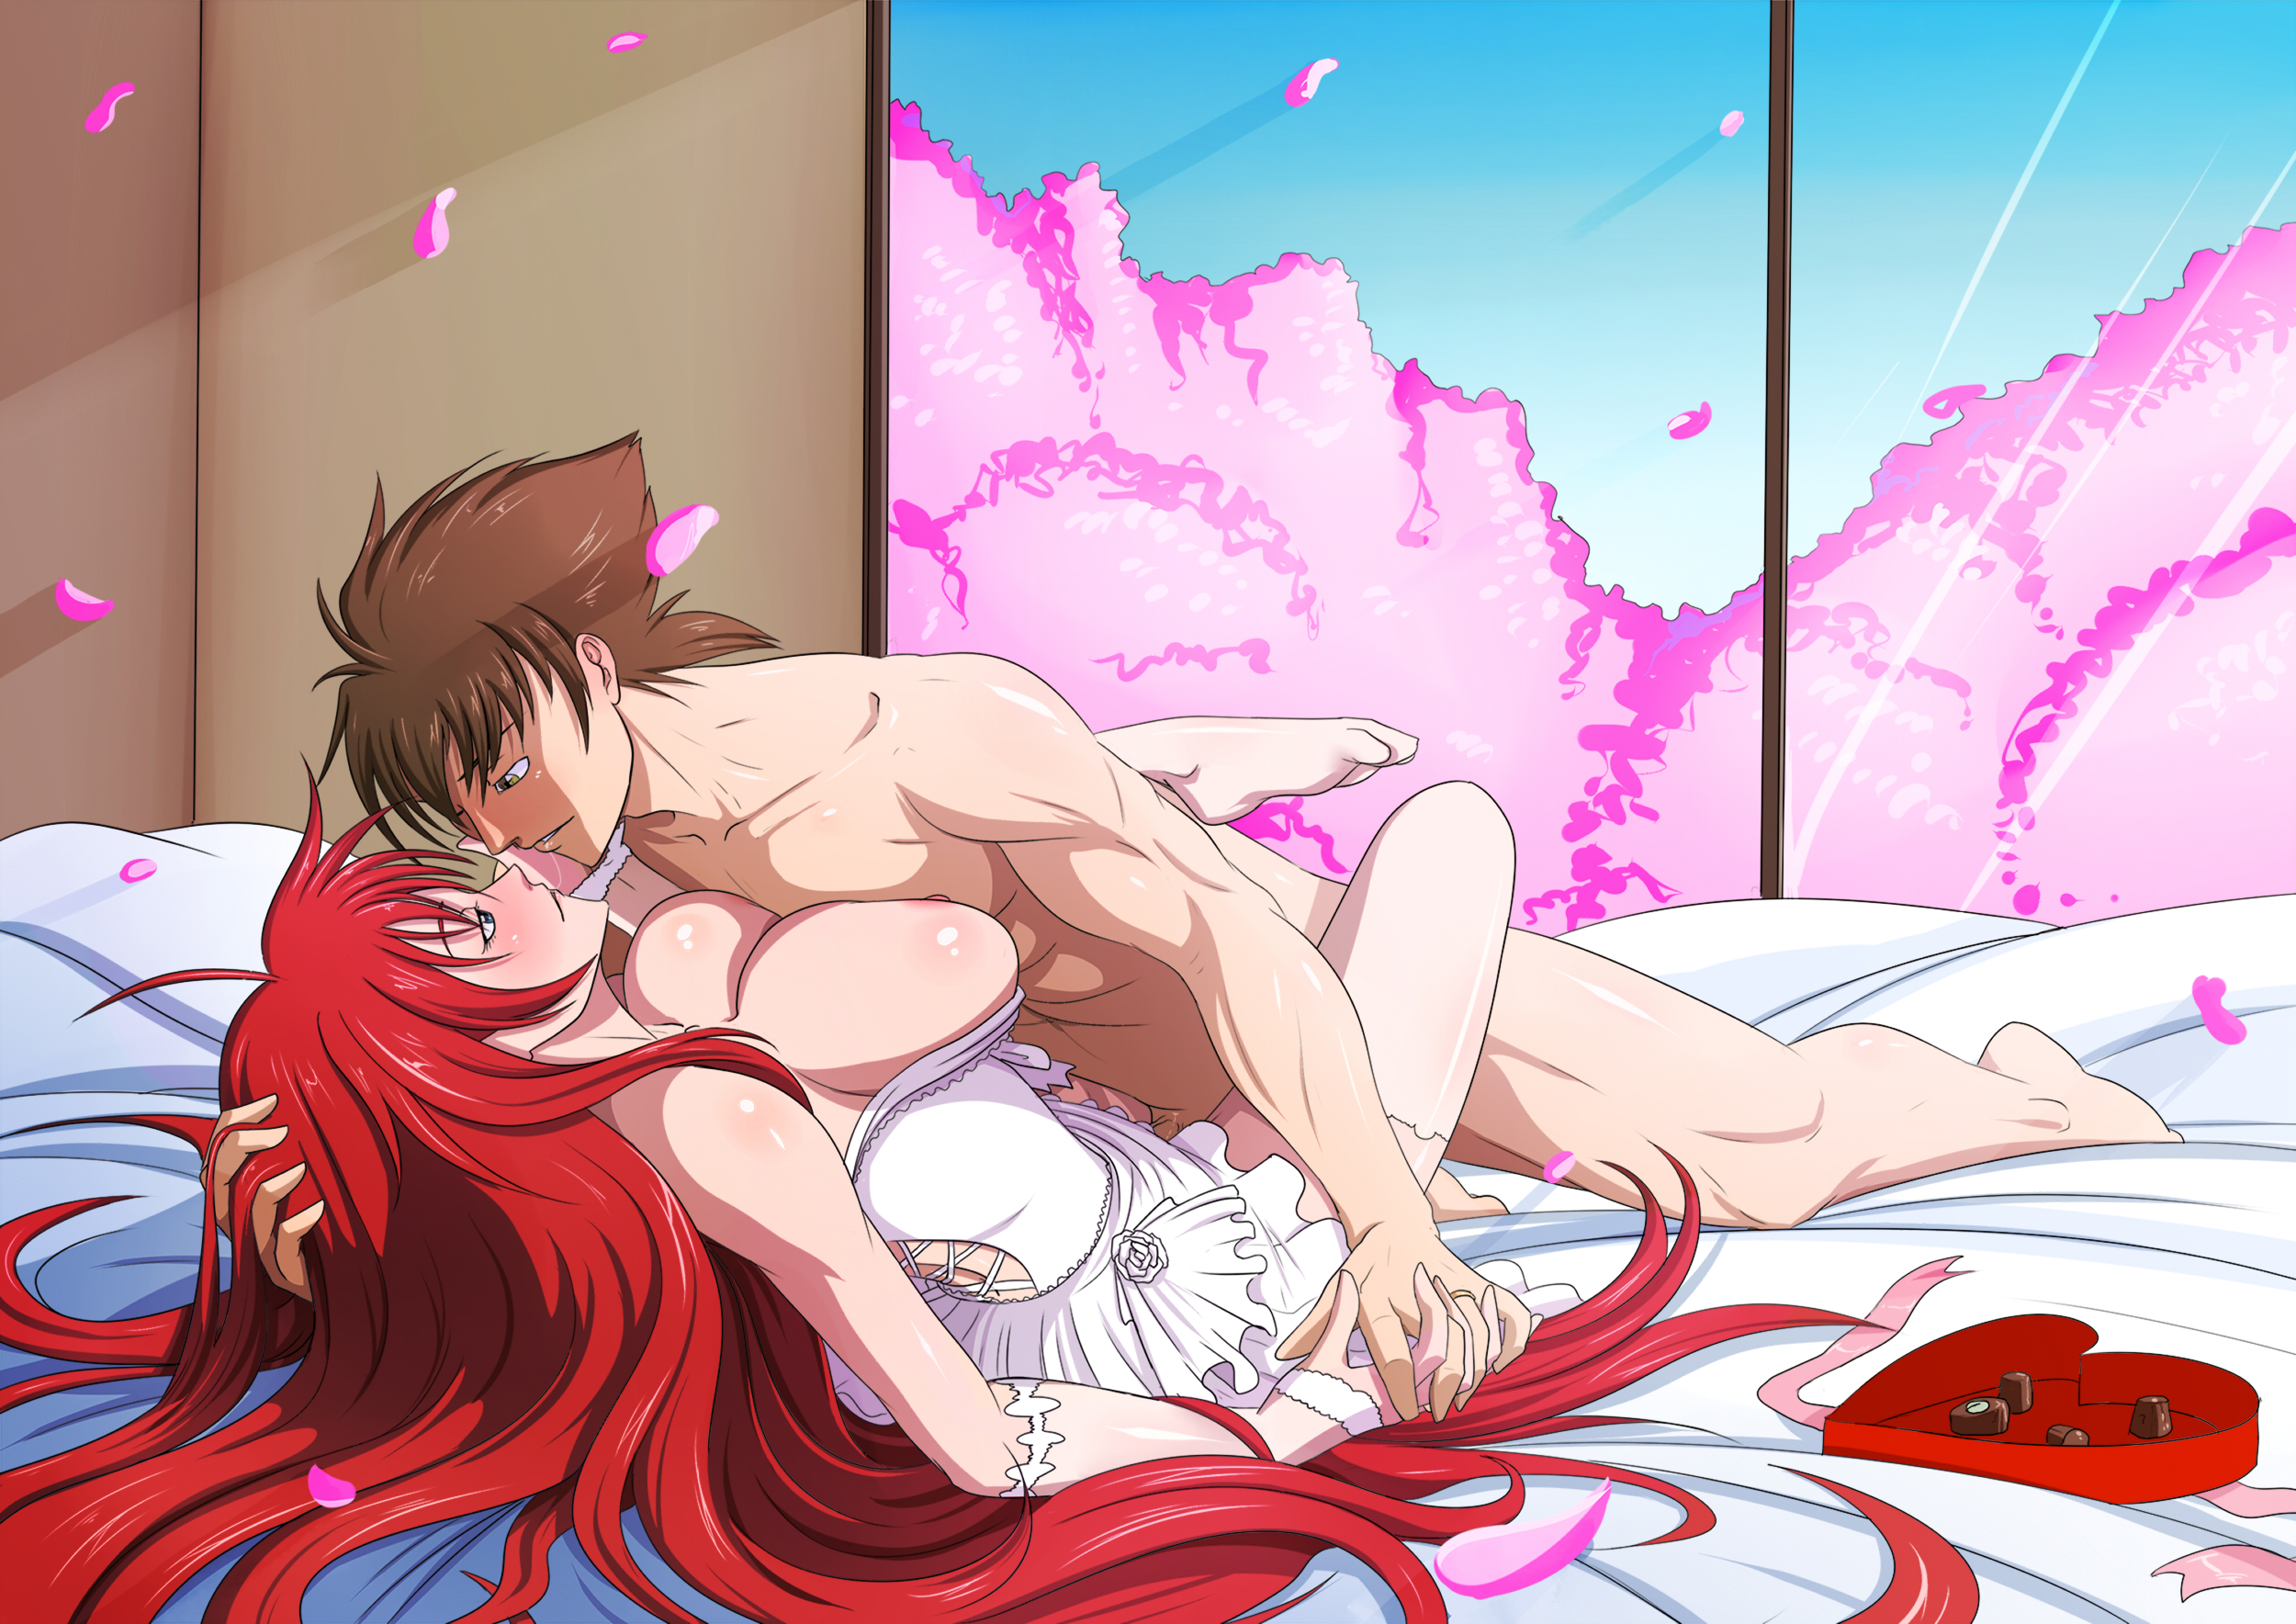 Hentai Making Love in hyoudou issei and rias gremory (high school dxd) - danbooru